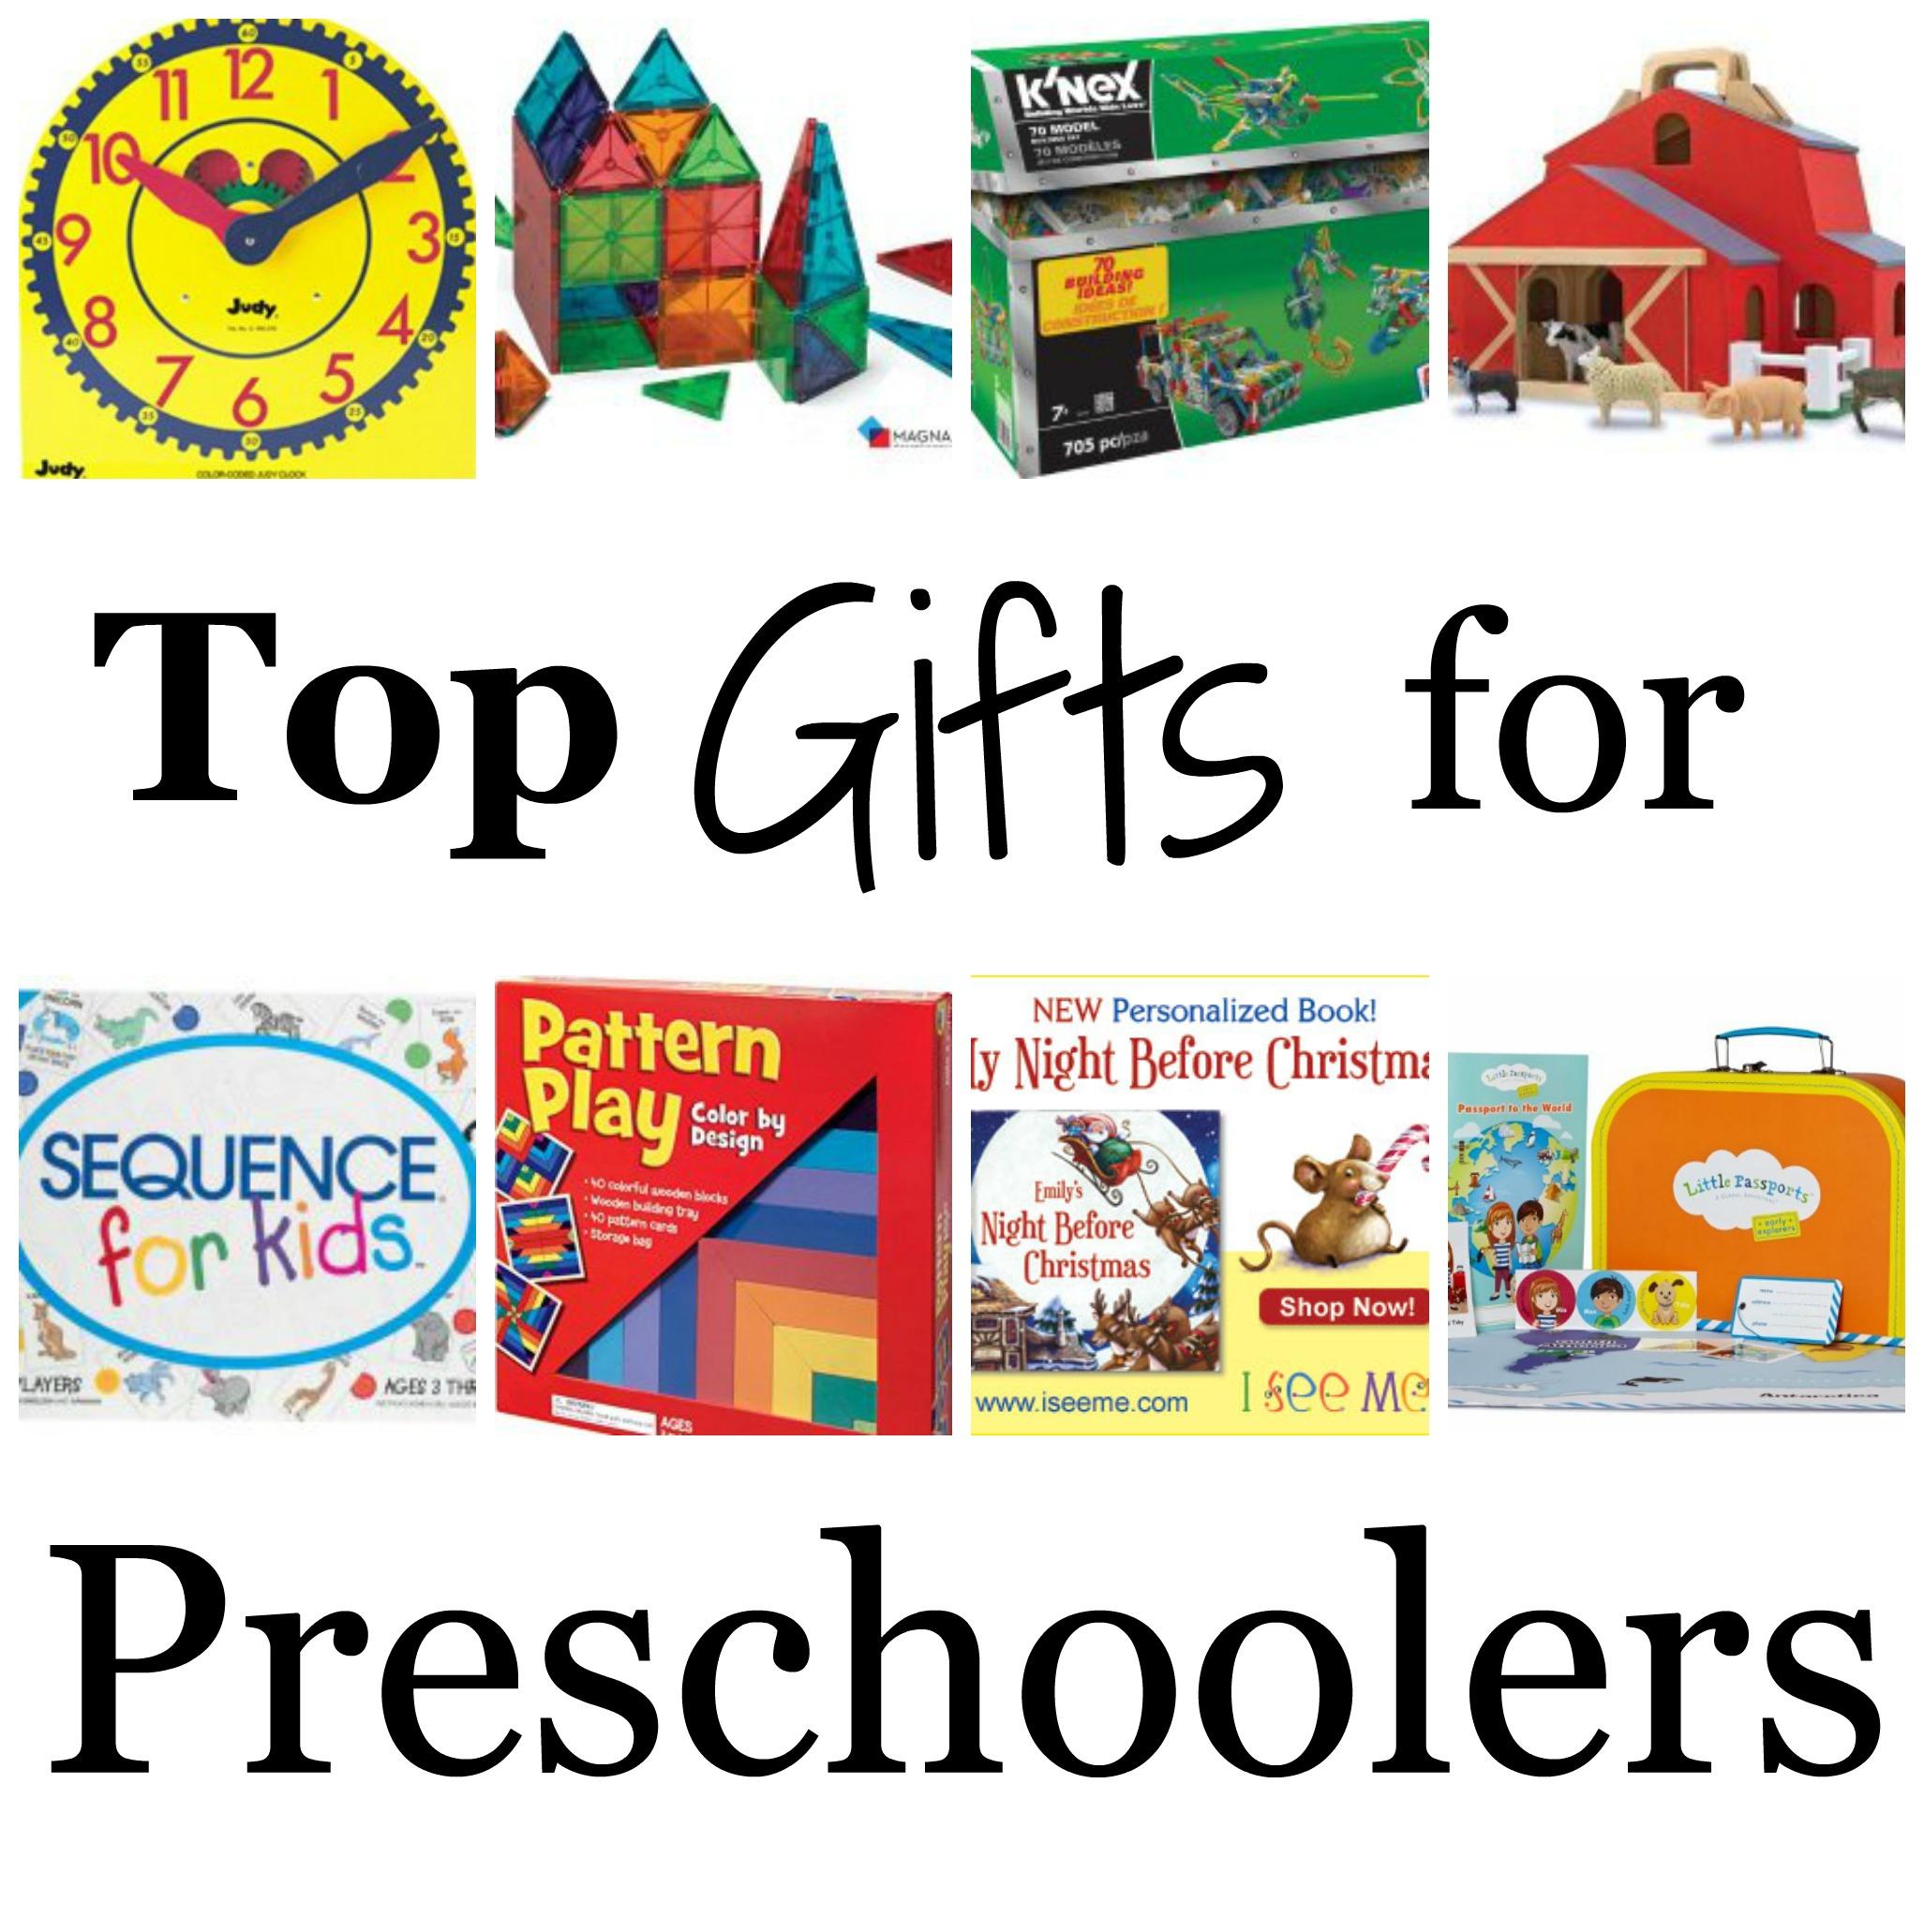 Top Gifts for Preschoolers